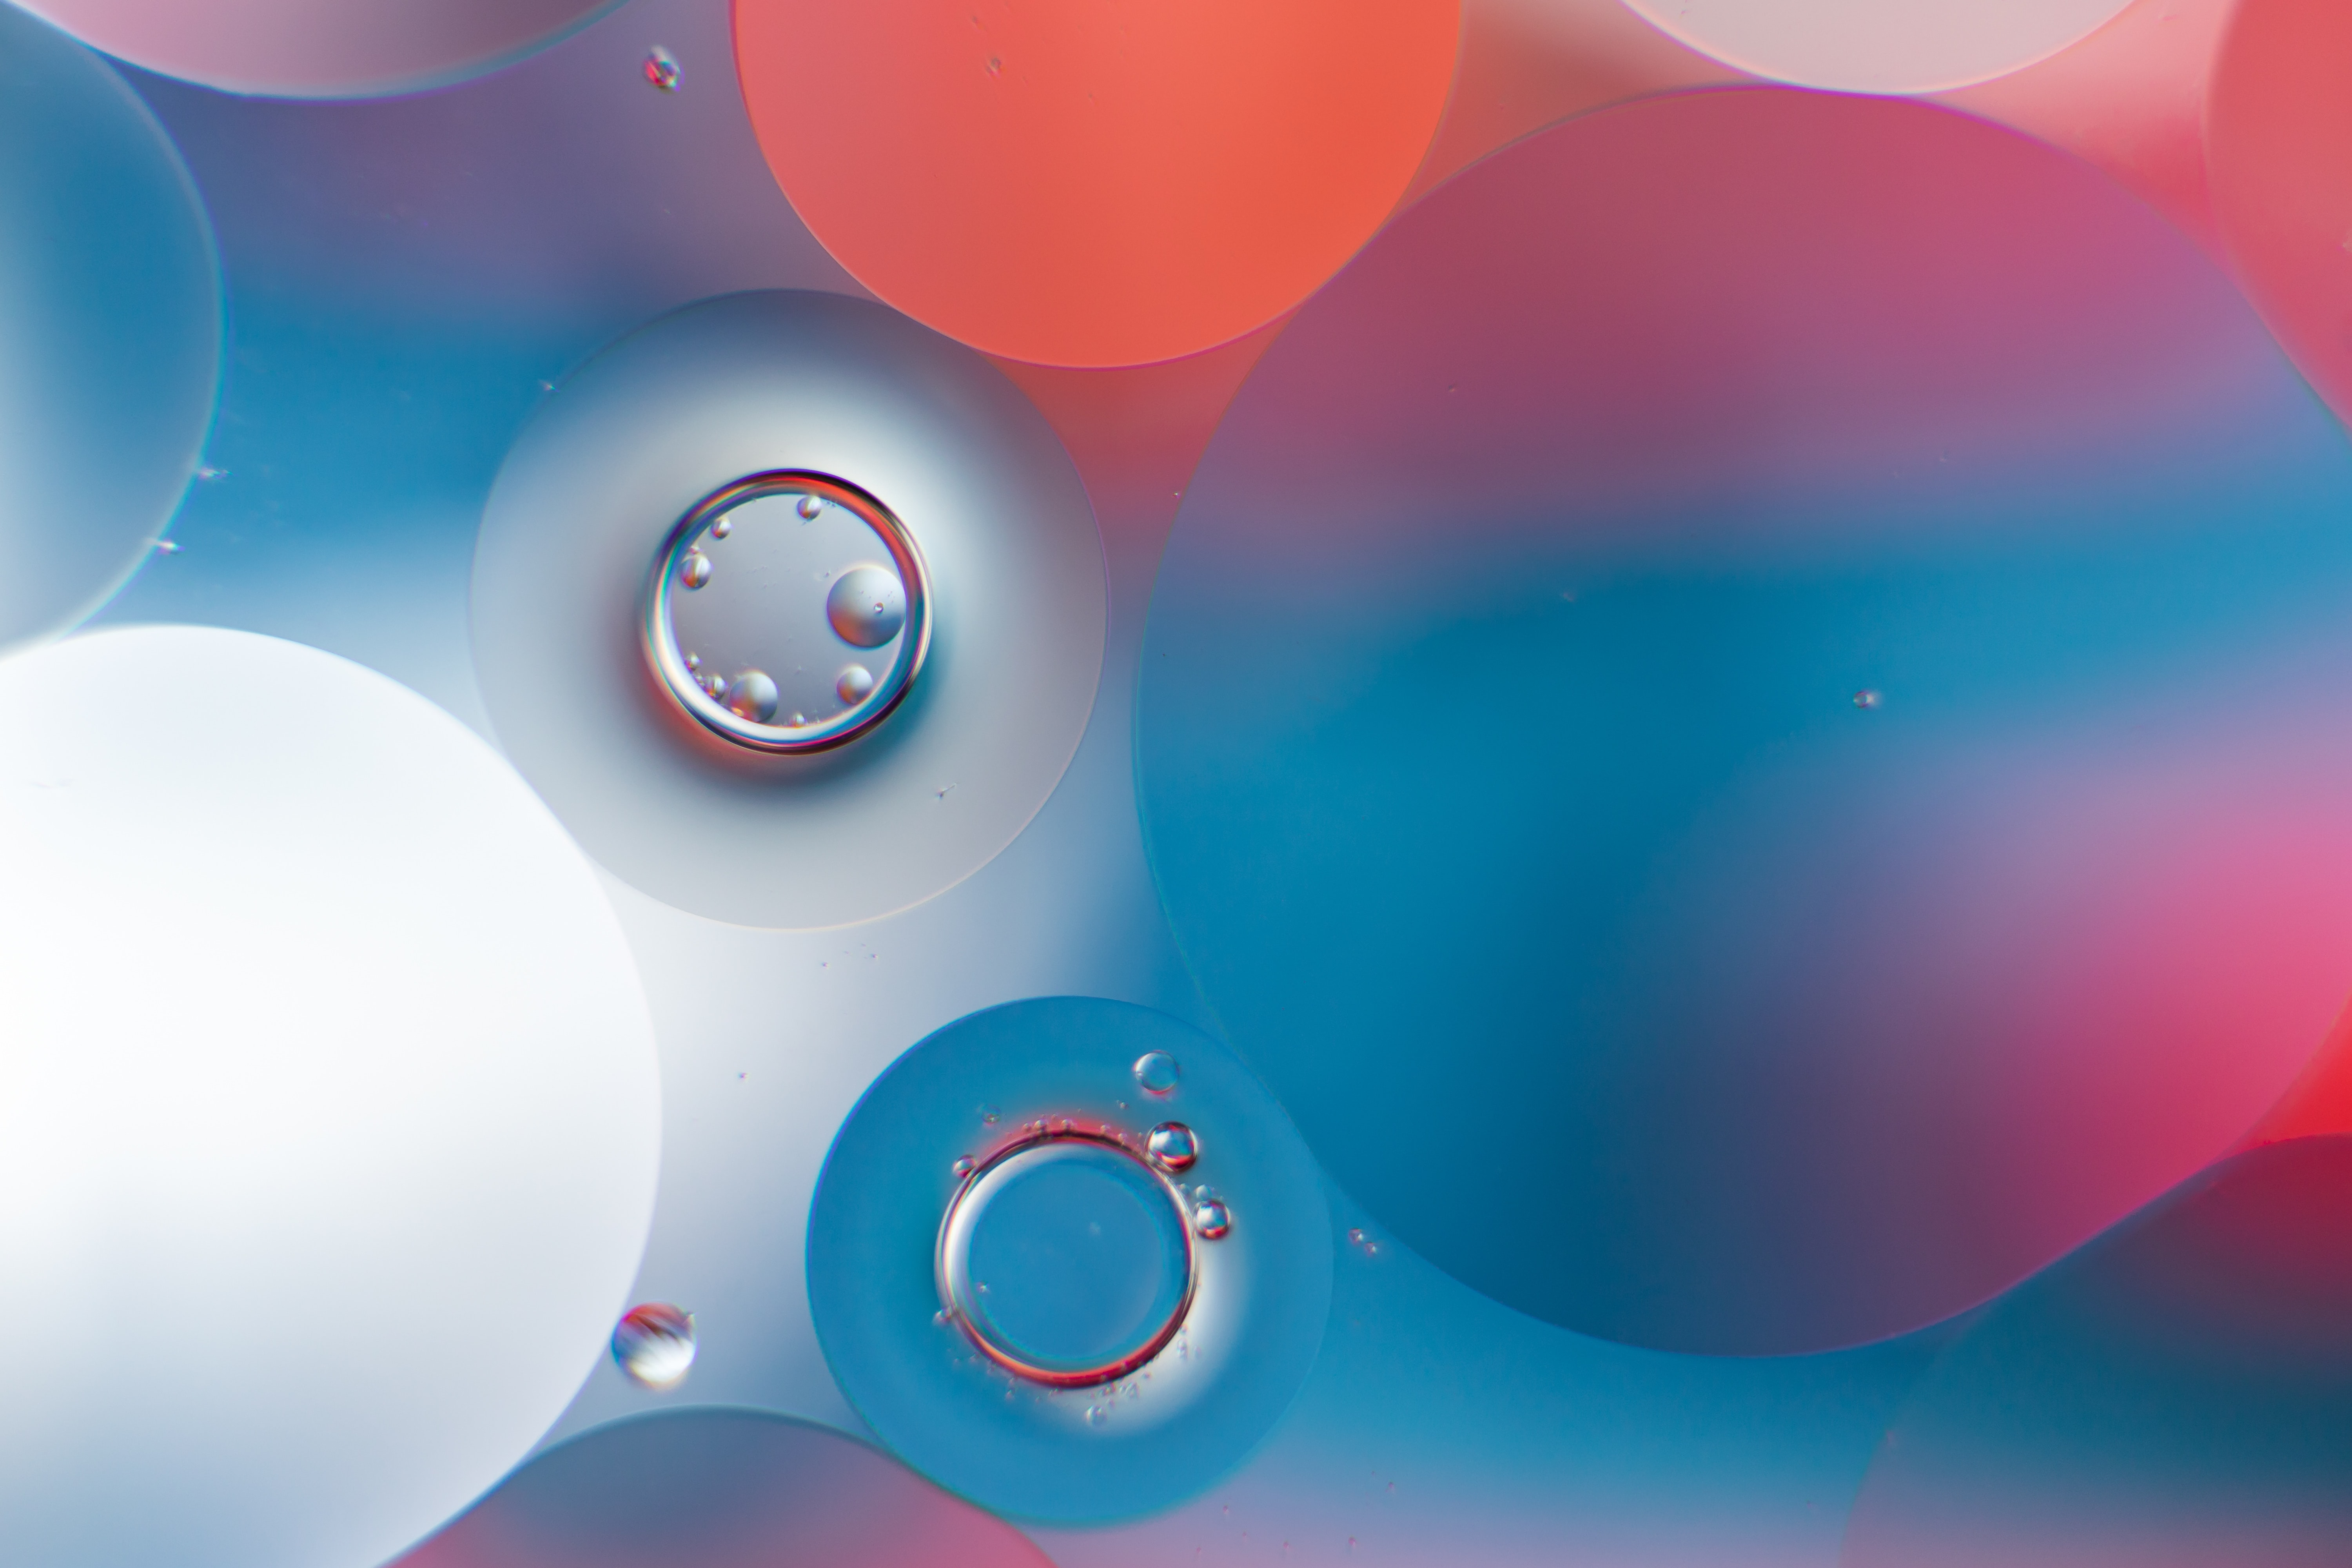 50659 download wallpaper Abstract, Water, Bubbles, Round, Gradient screensavers and pictures for free